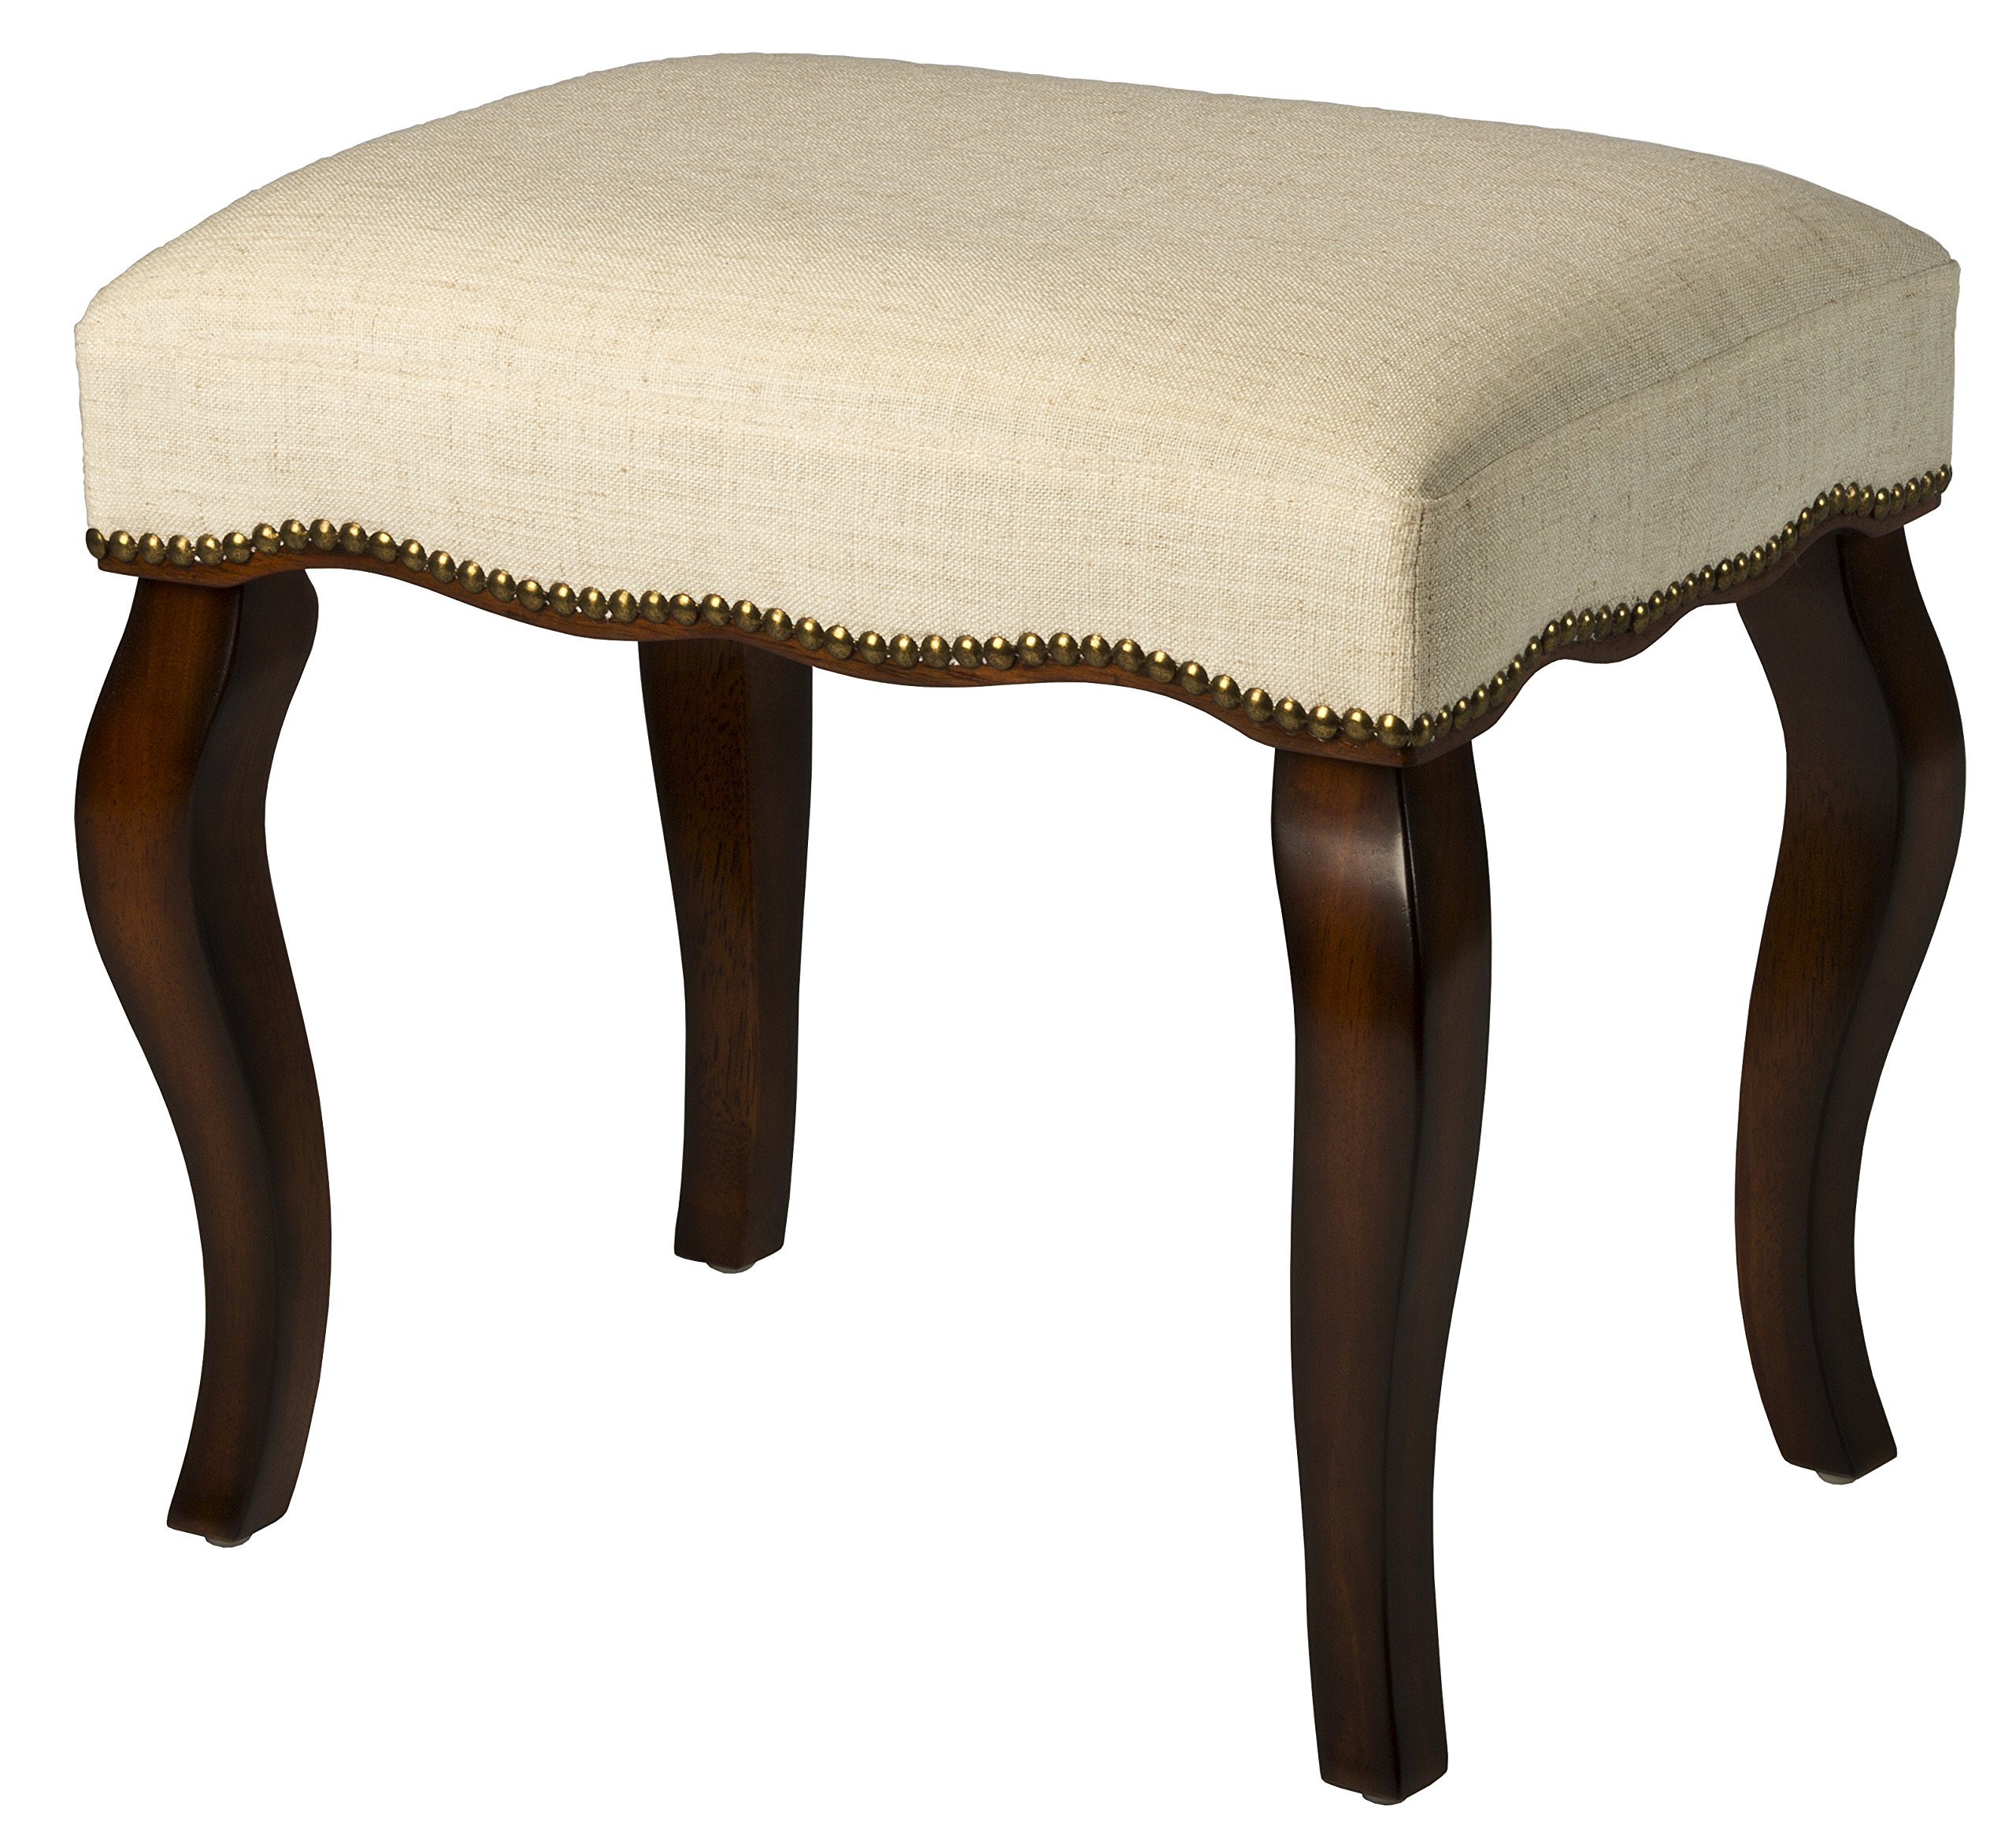 Hillsdale Furniture Hamilton Backless Vanity Stool, Burnished Oak Wood and Ivory Upholstery with Nail Head Trim by Hillsdale Furniture